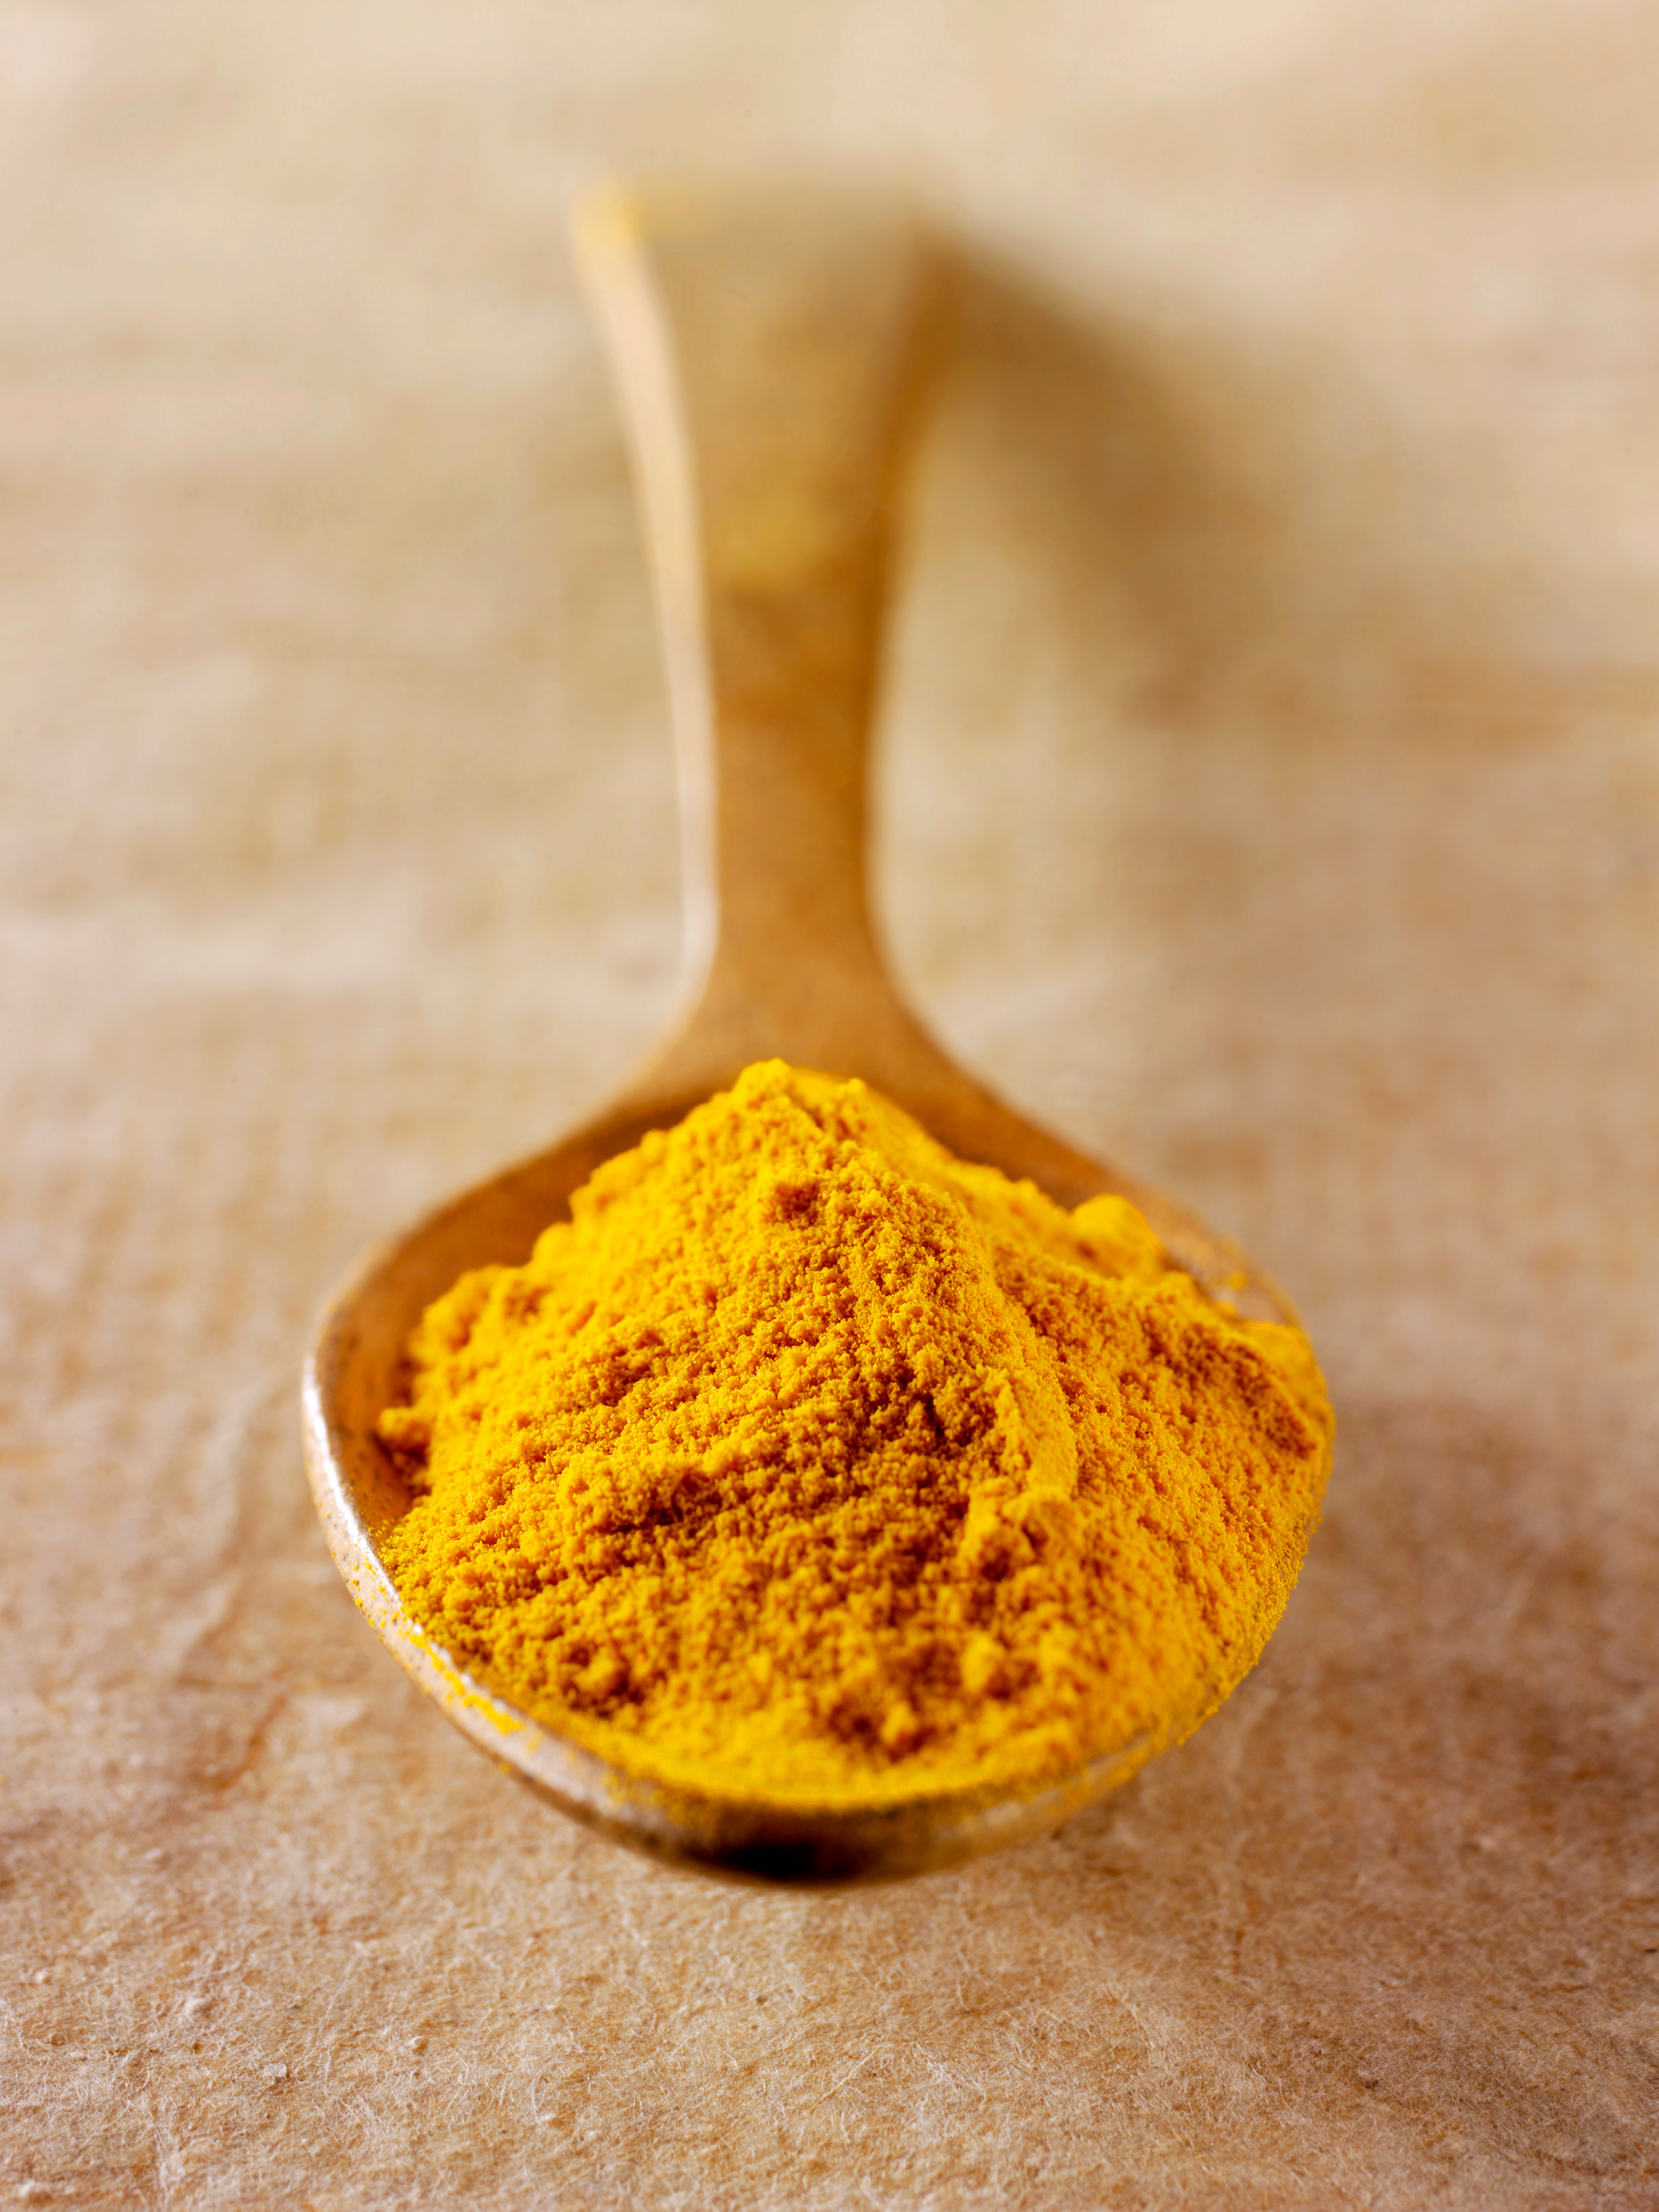 The spice has been used in India as a herbal medicine for thousands of years